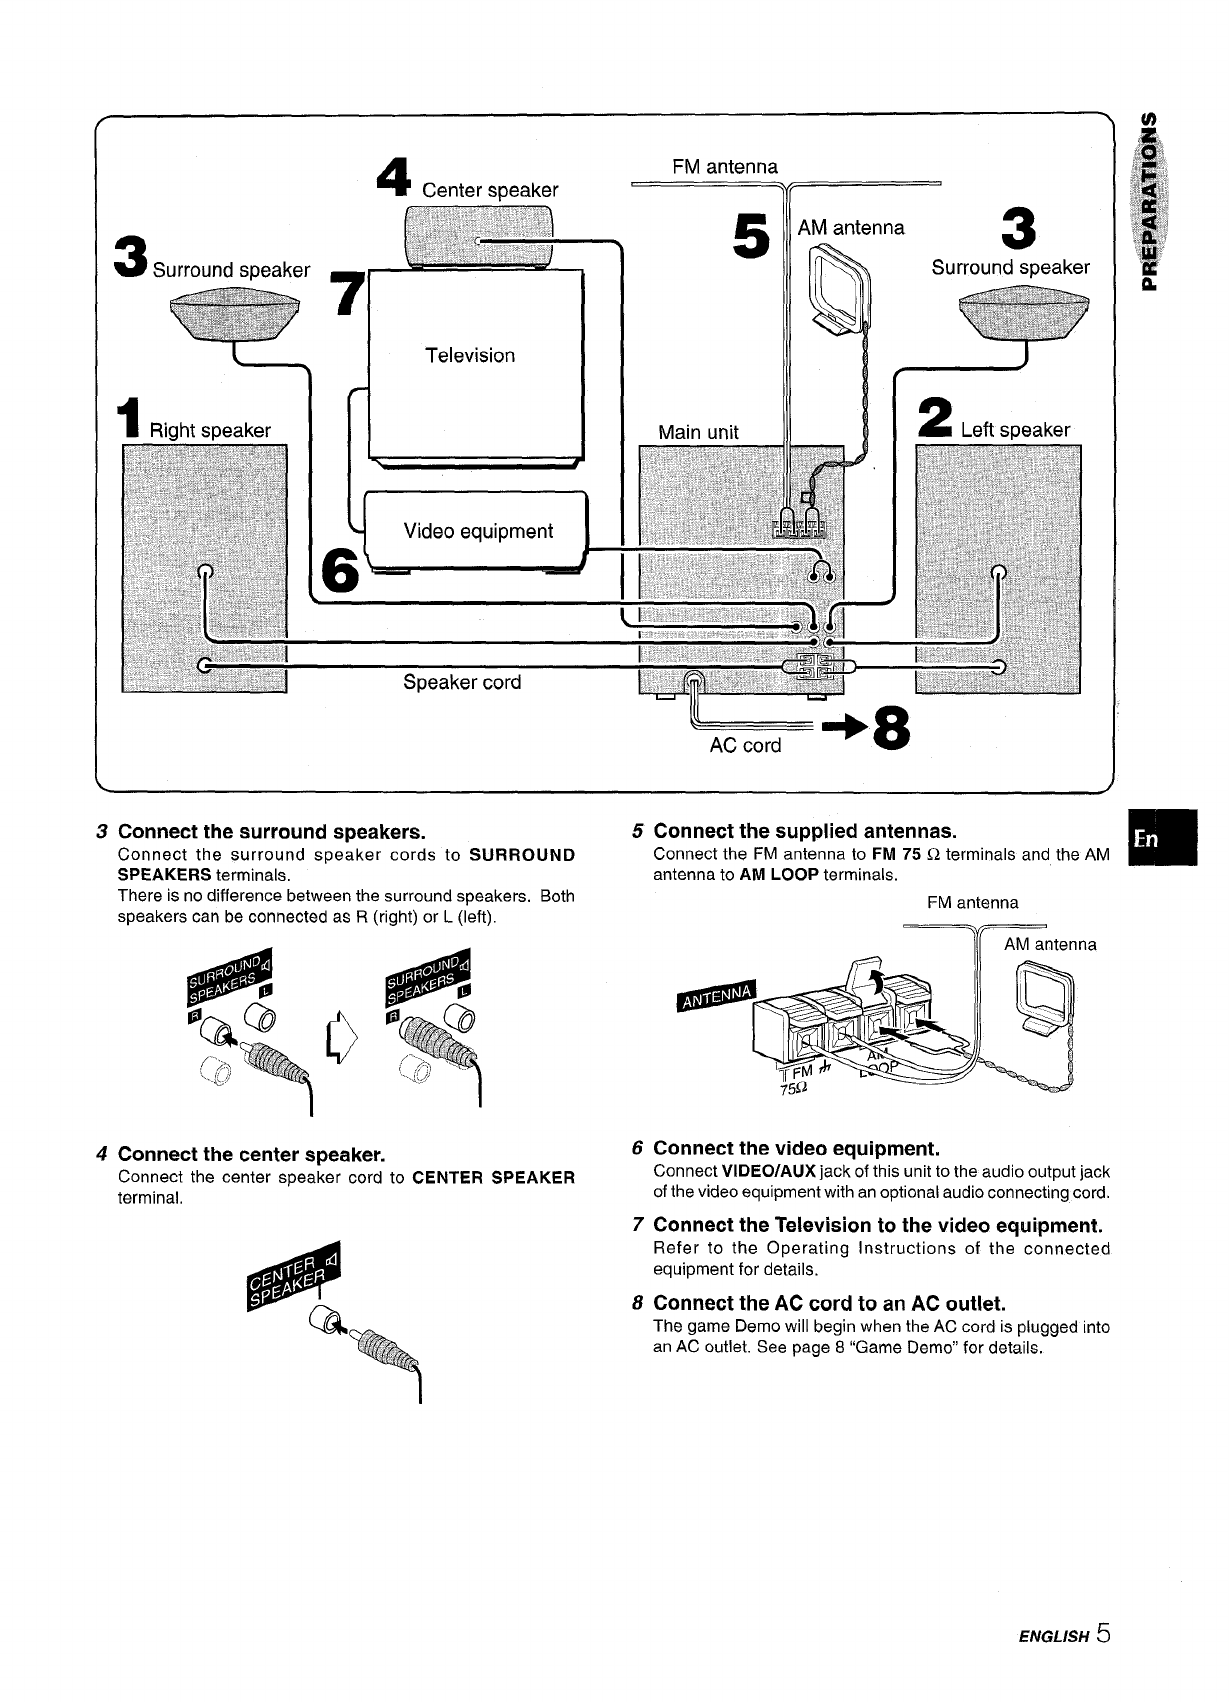 Page 5 of Aiwa Stereo System SX-WNA555 User Guide